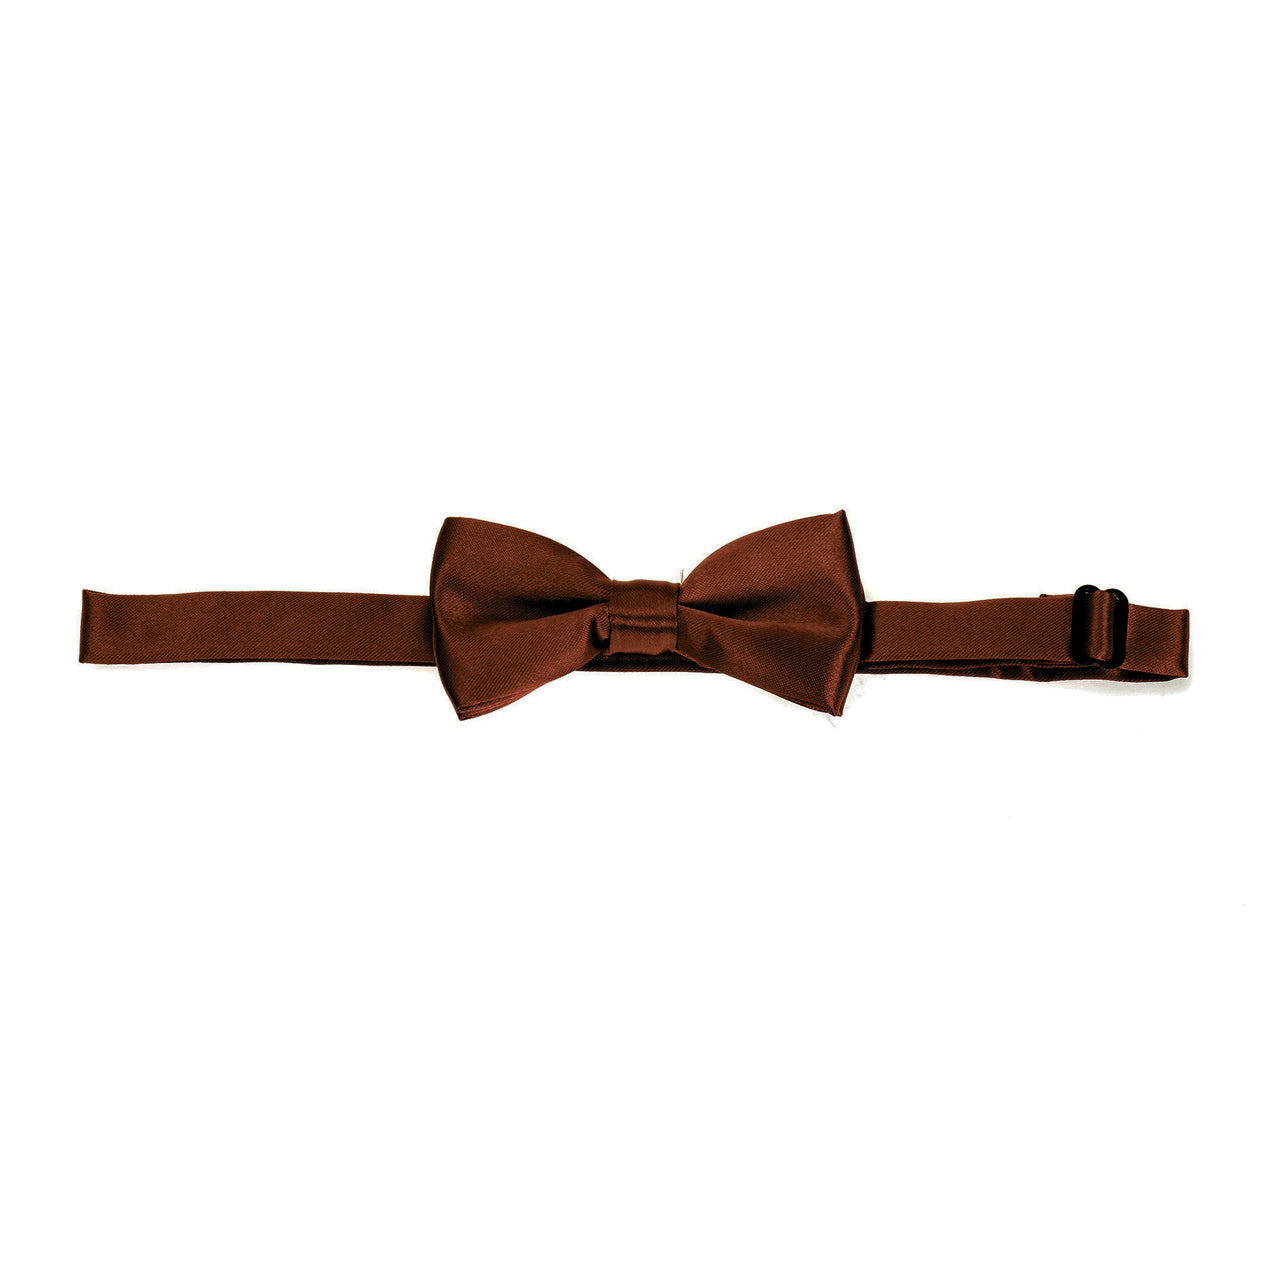 Kids Pre-tied Plain Satin Bow Tie - Brown